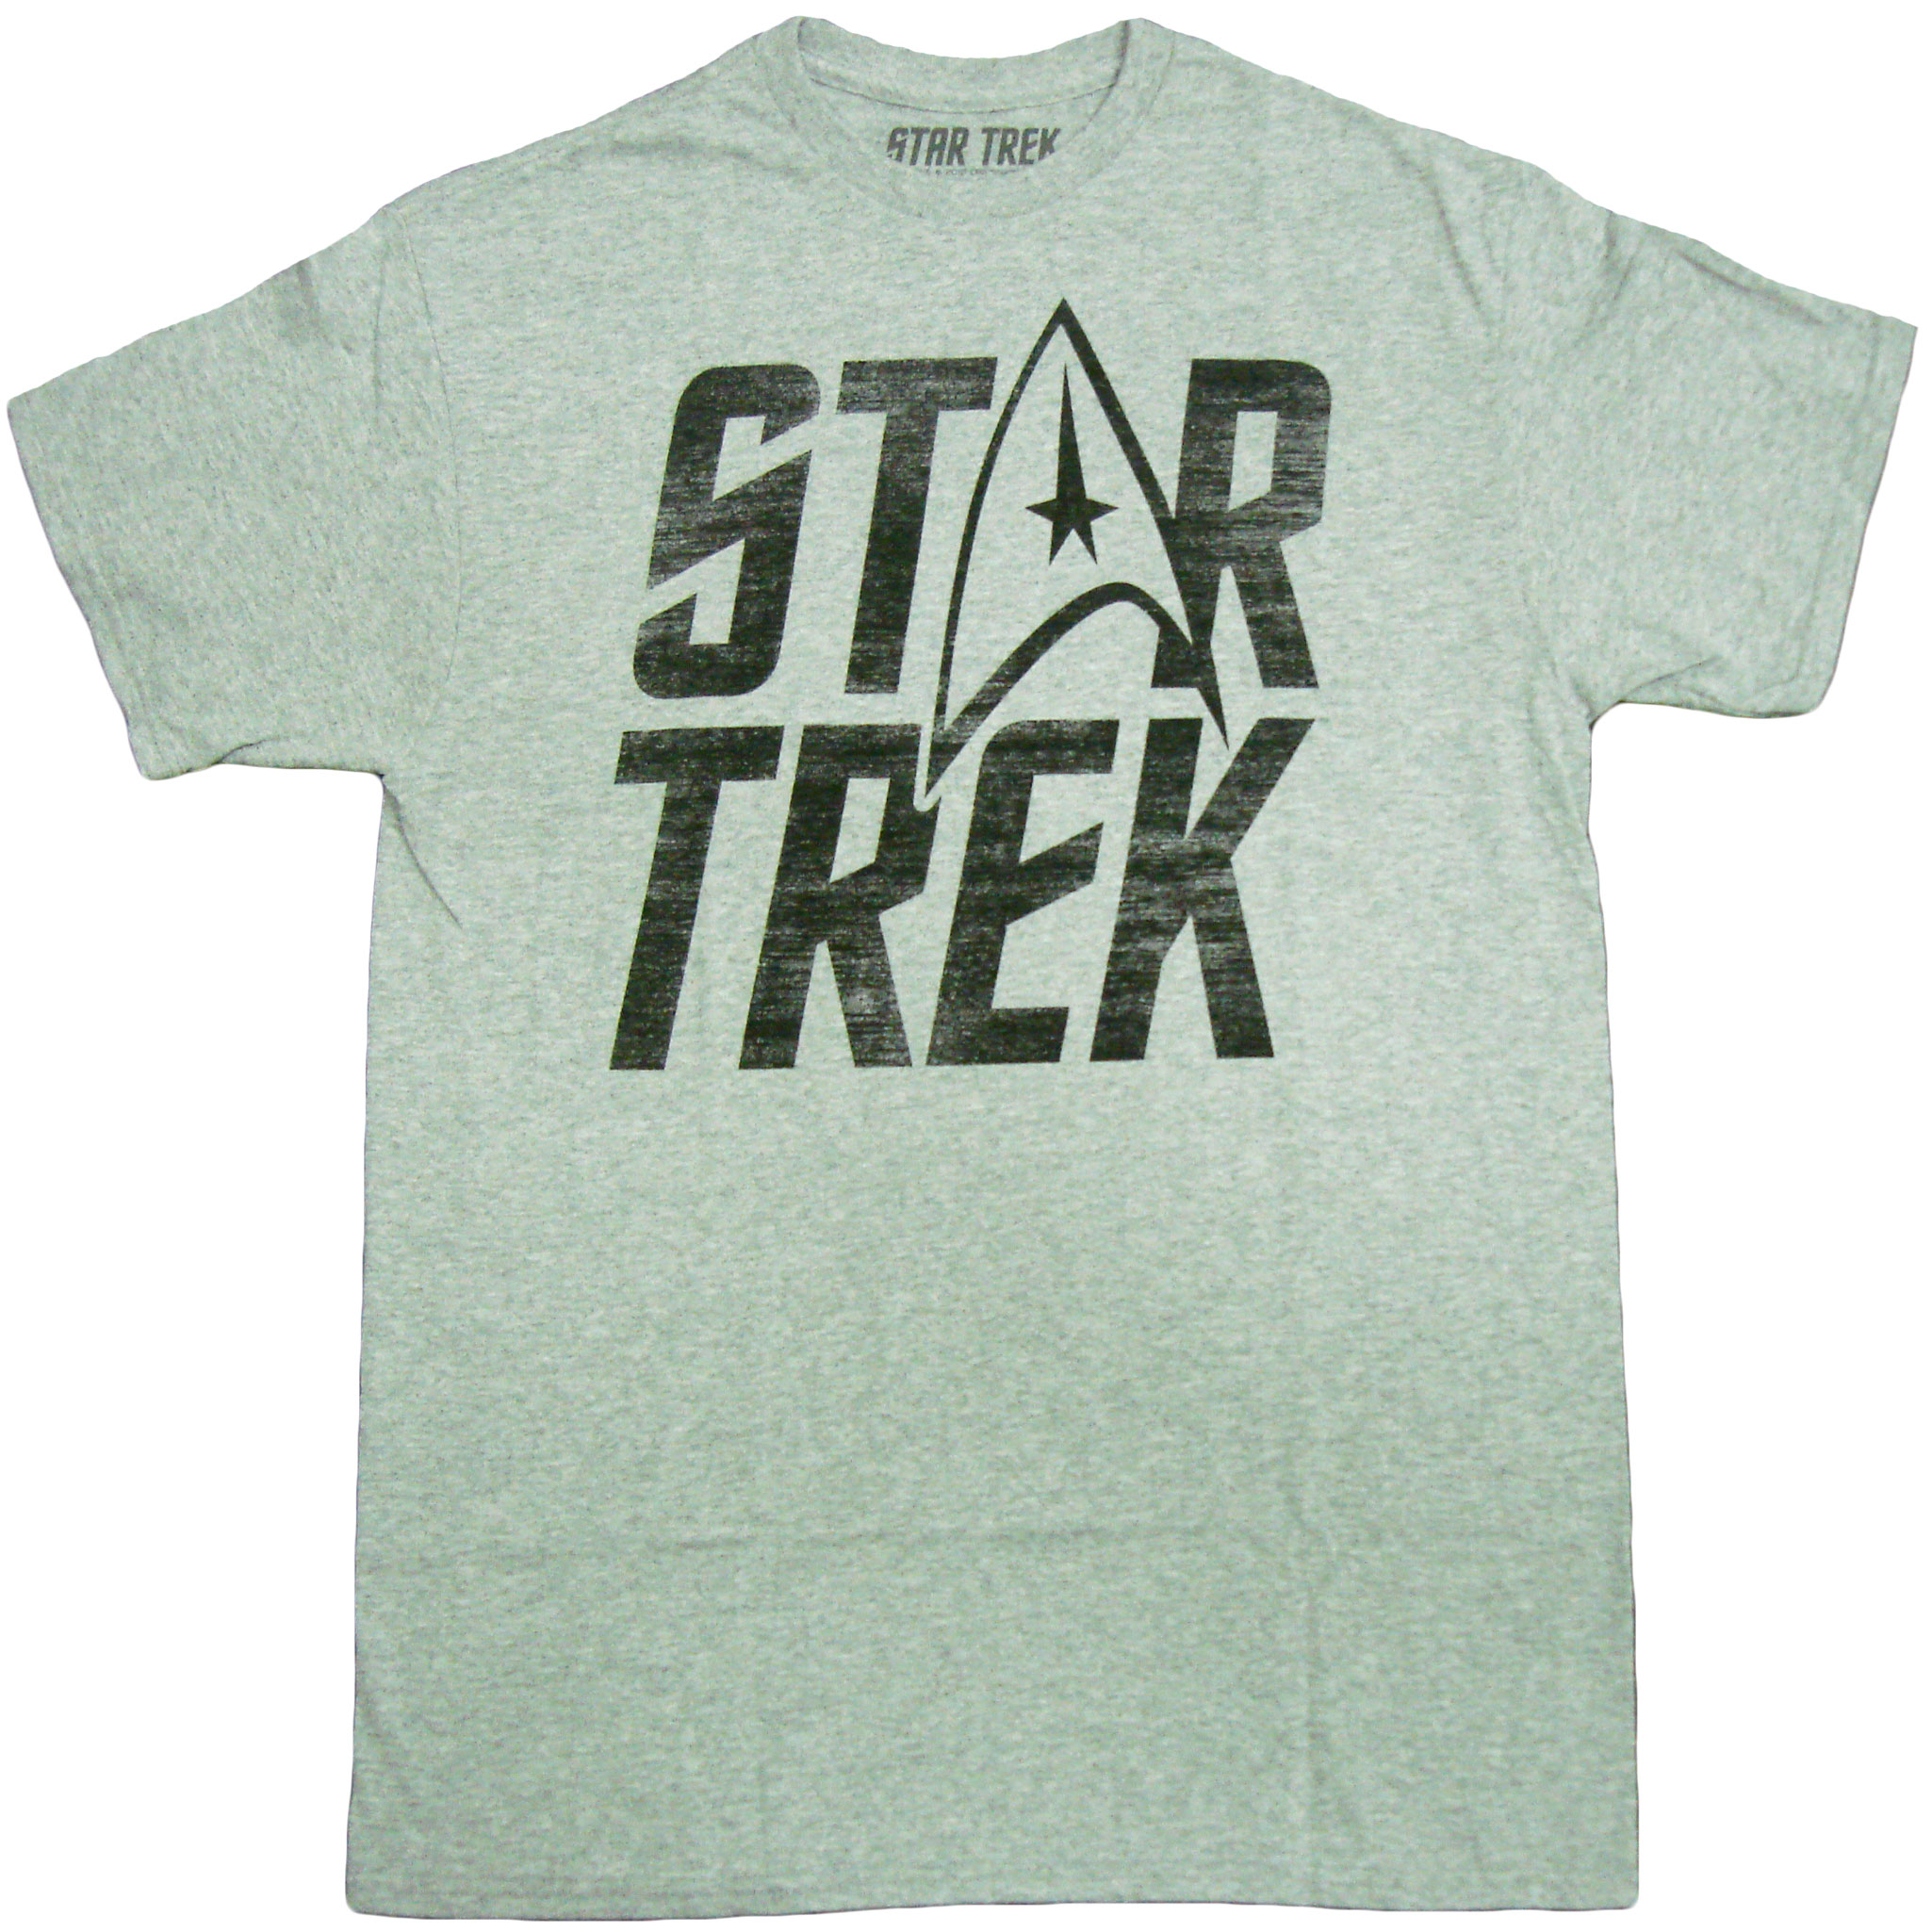 Are mistaken. starship adult stores not give